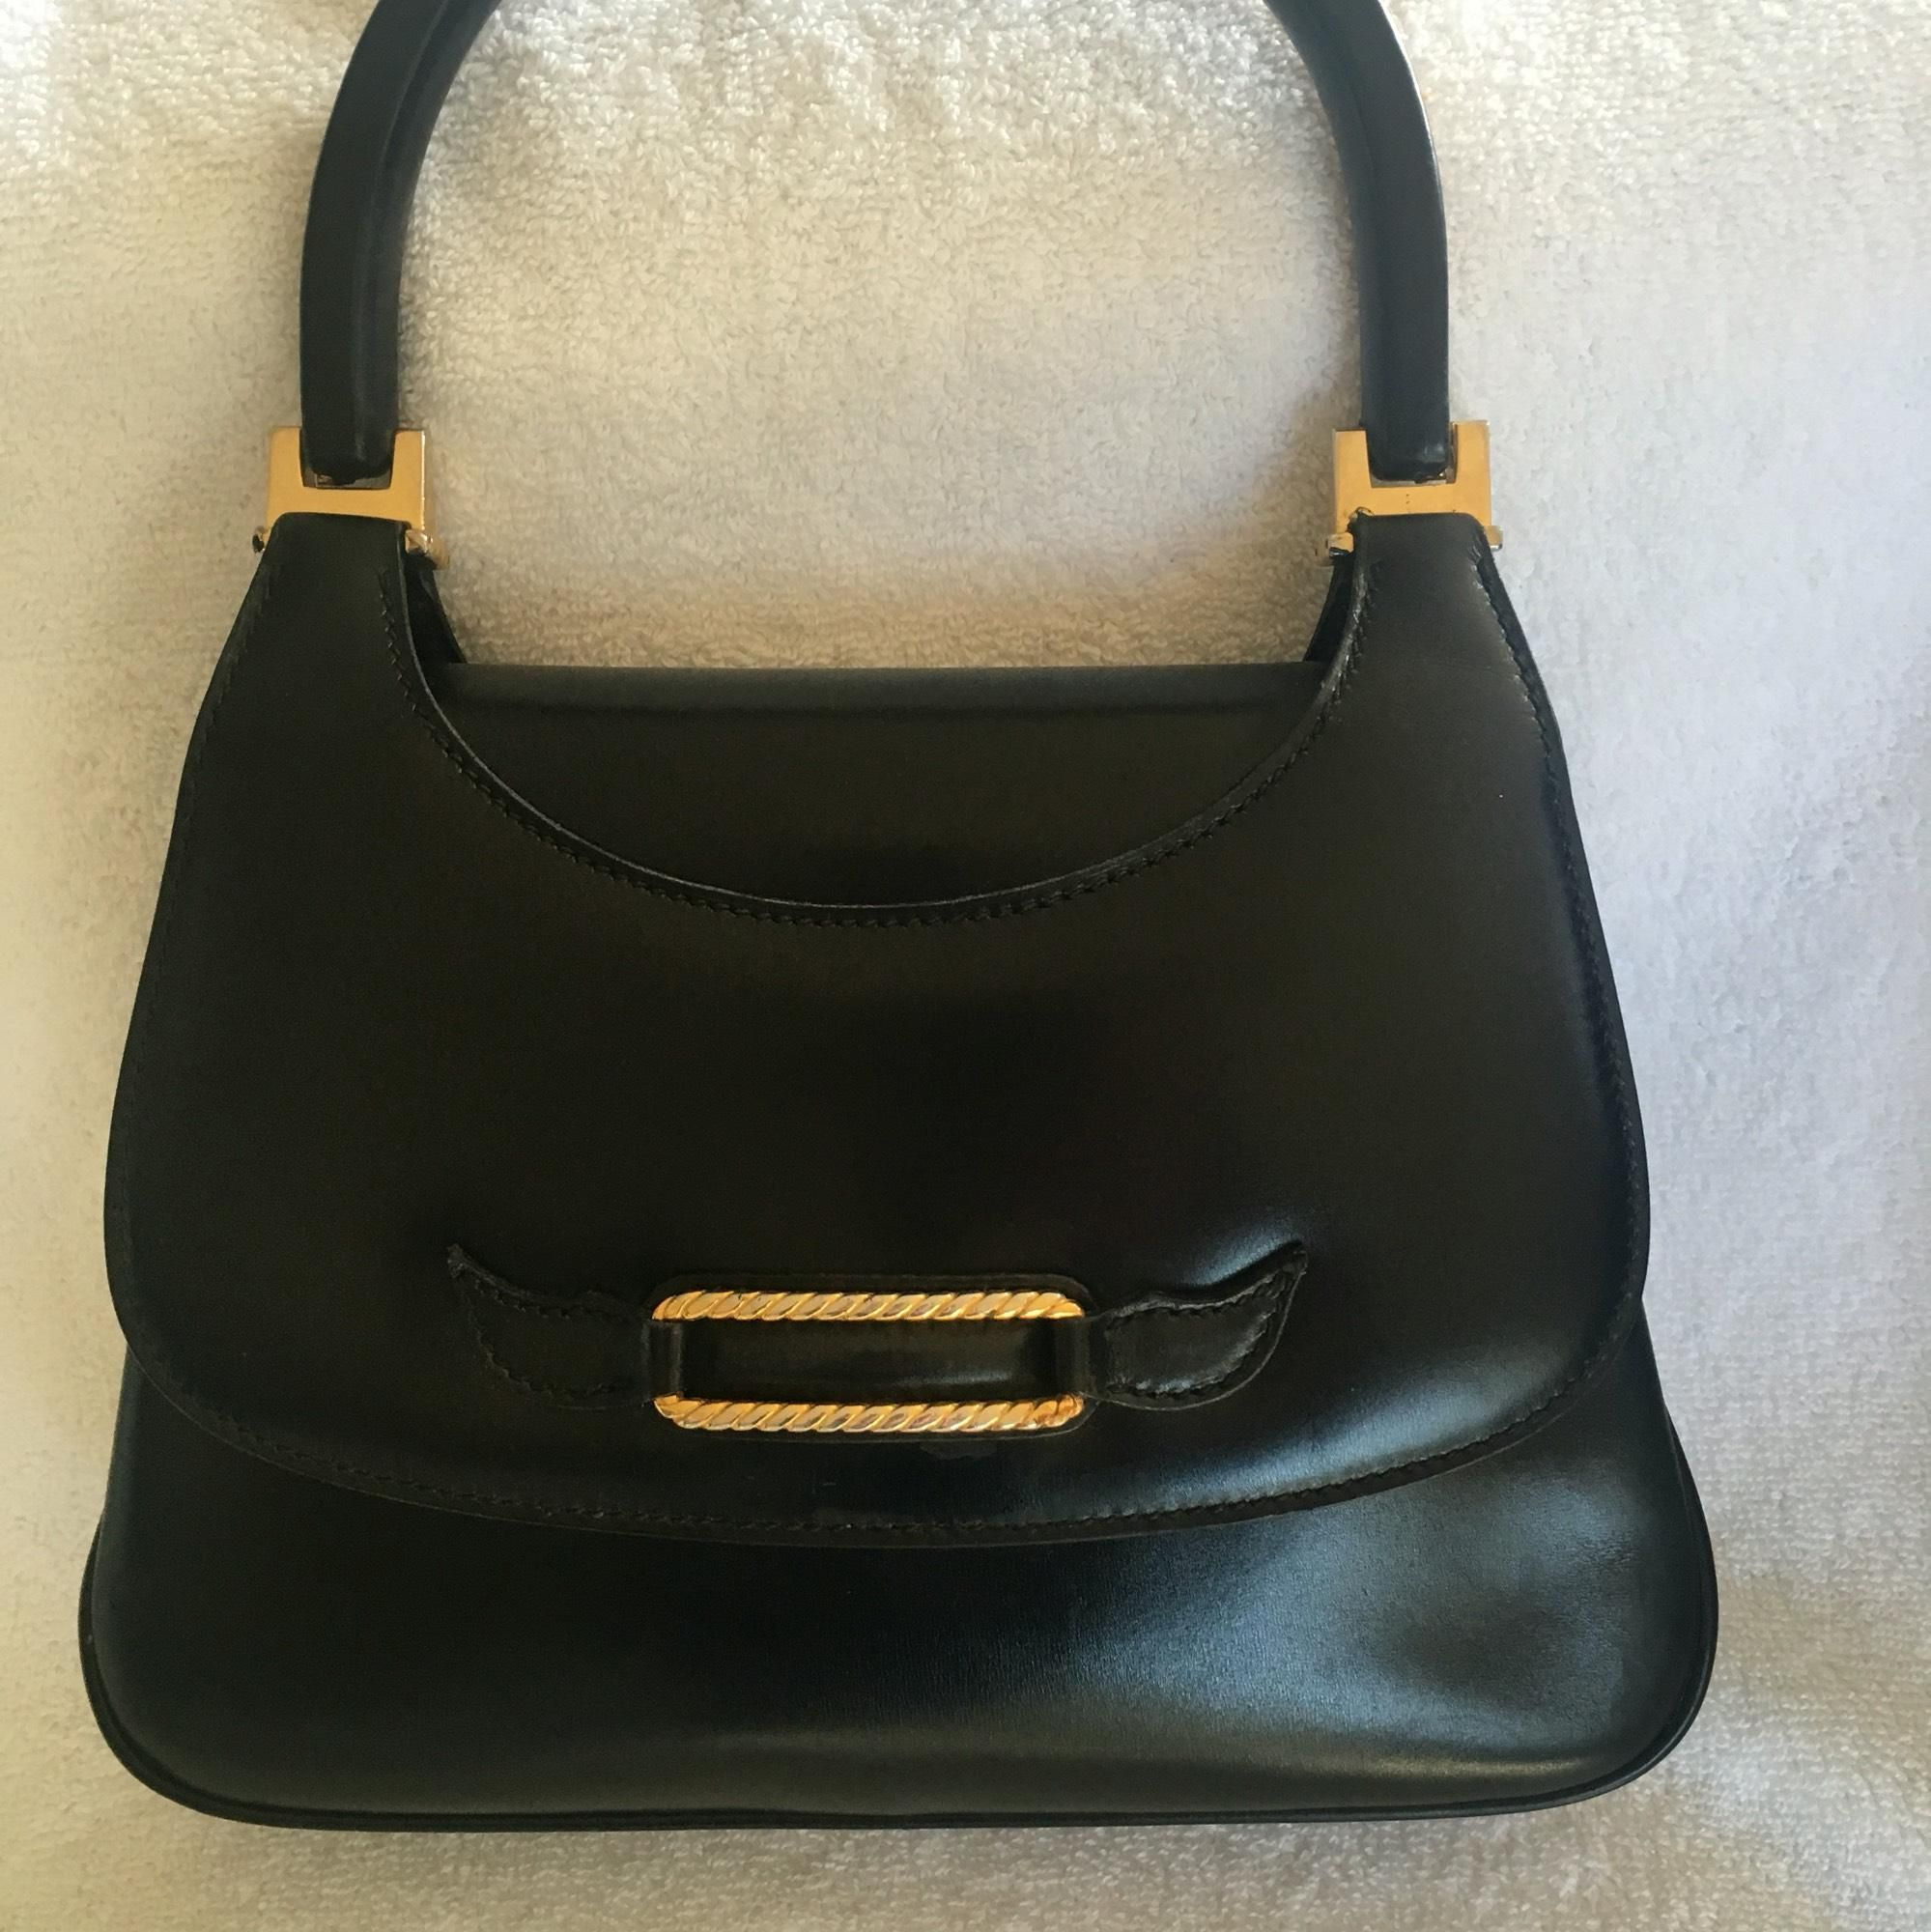 1429fbf1348 Save 67% on the Gucci Leather Top Handle - Gold Metal Detail Black Satchel!  This satchel is a top 10 member favorite on Tradesy.